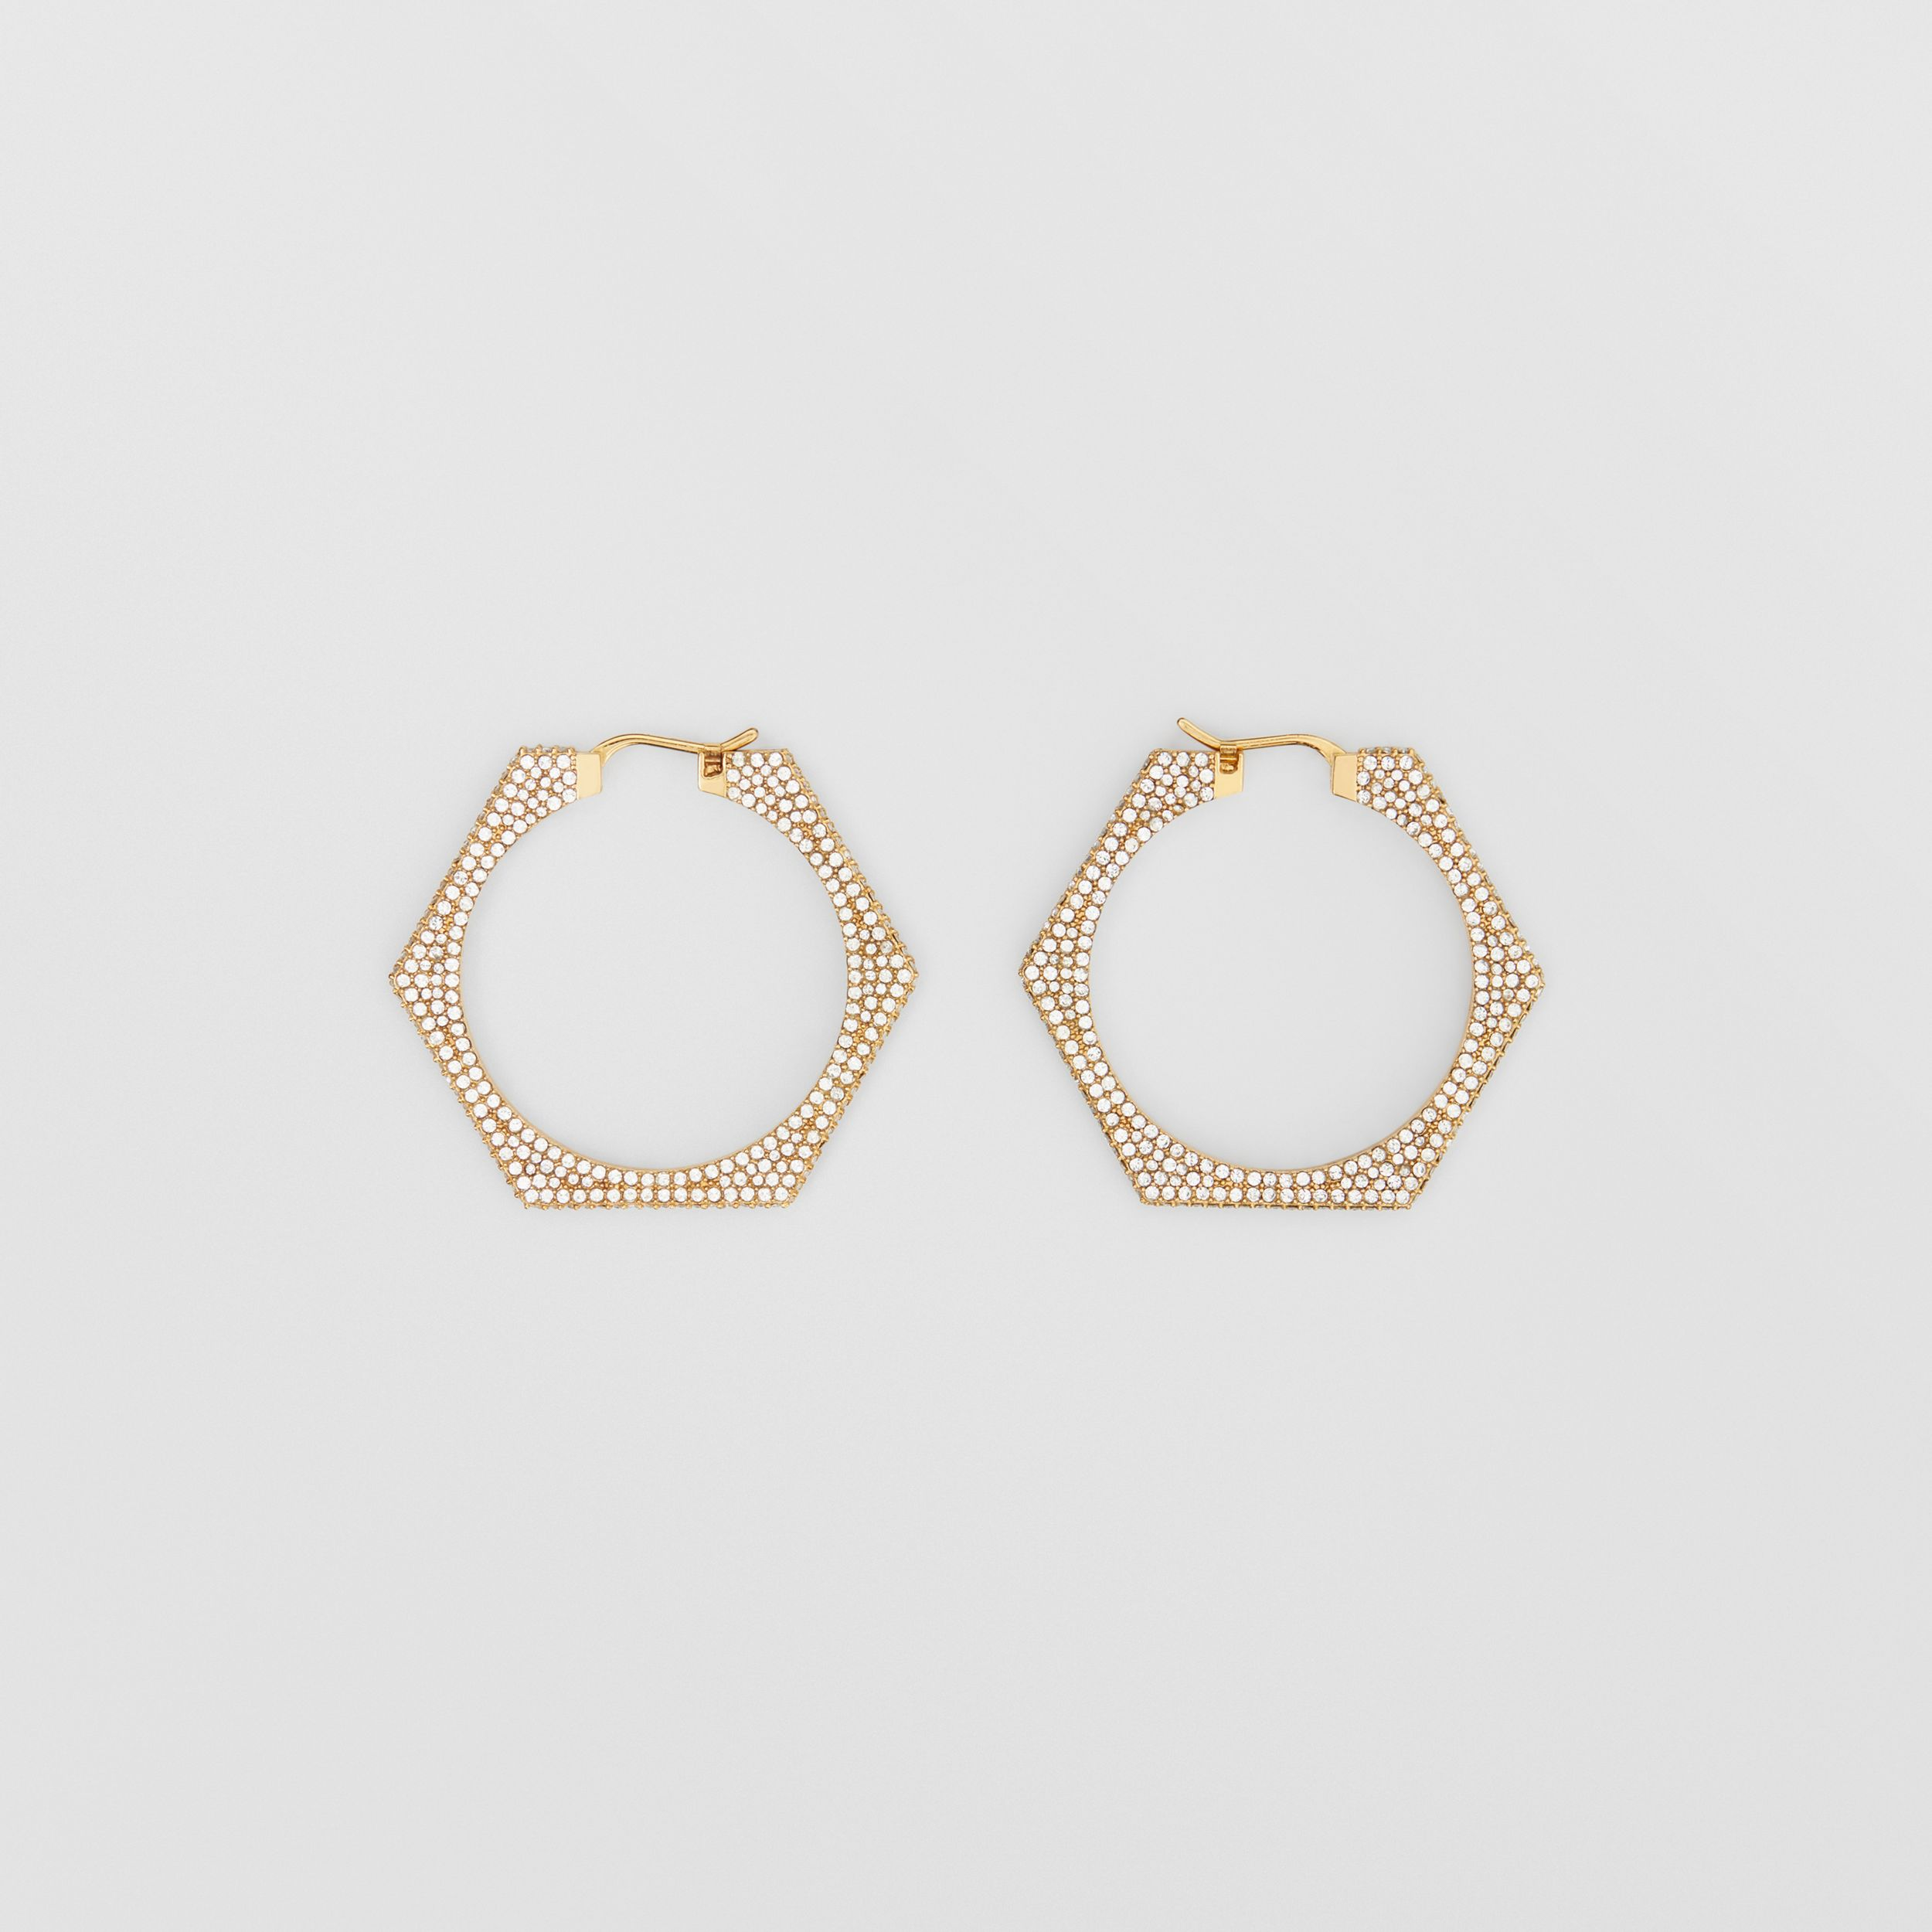 Crystal Detail Gold-plated Nut Hoop Earrings in Light Gold/crystal - Women | Burberry Australia - 1